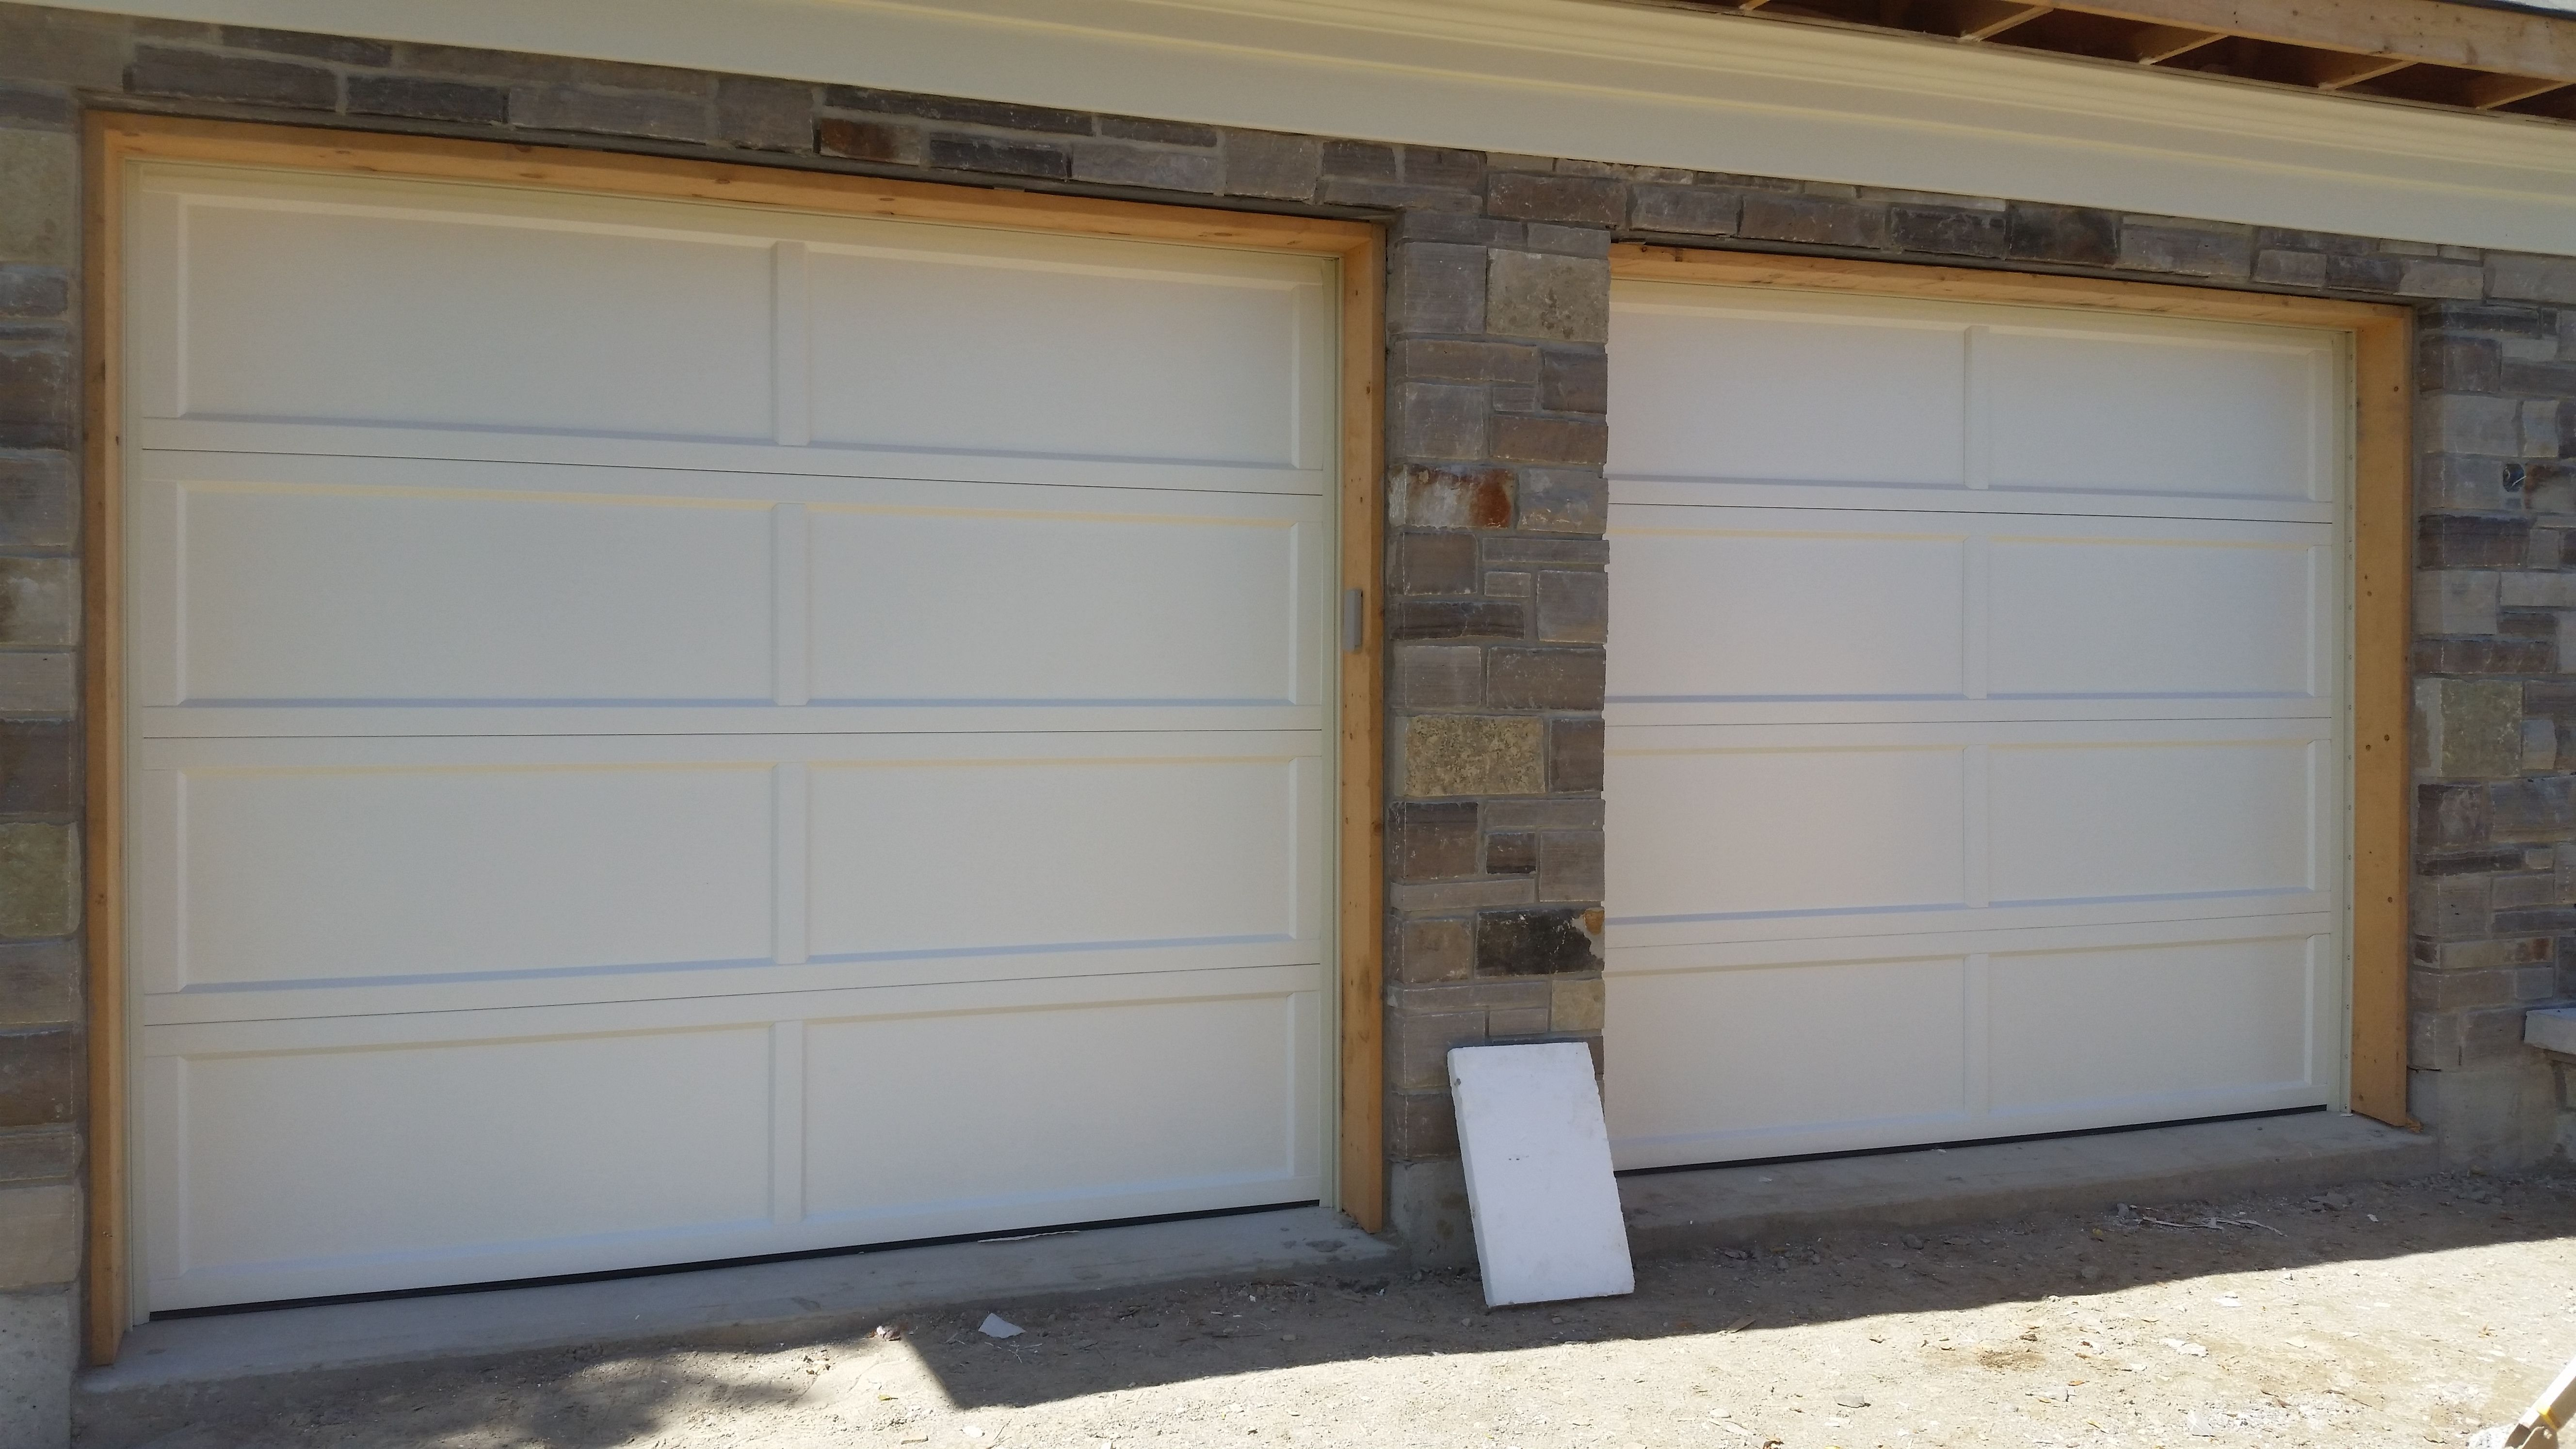 I 18973 Chi 2294 With Recessed Panel Outdoor Decor Garage Doors Installation